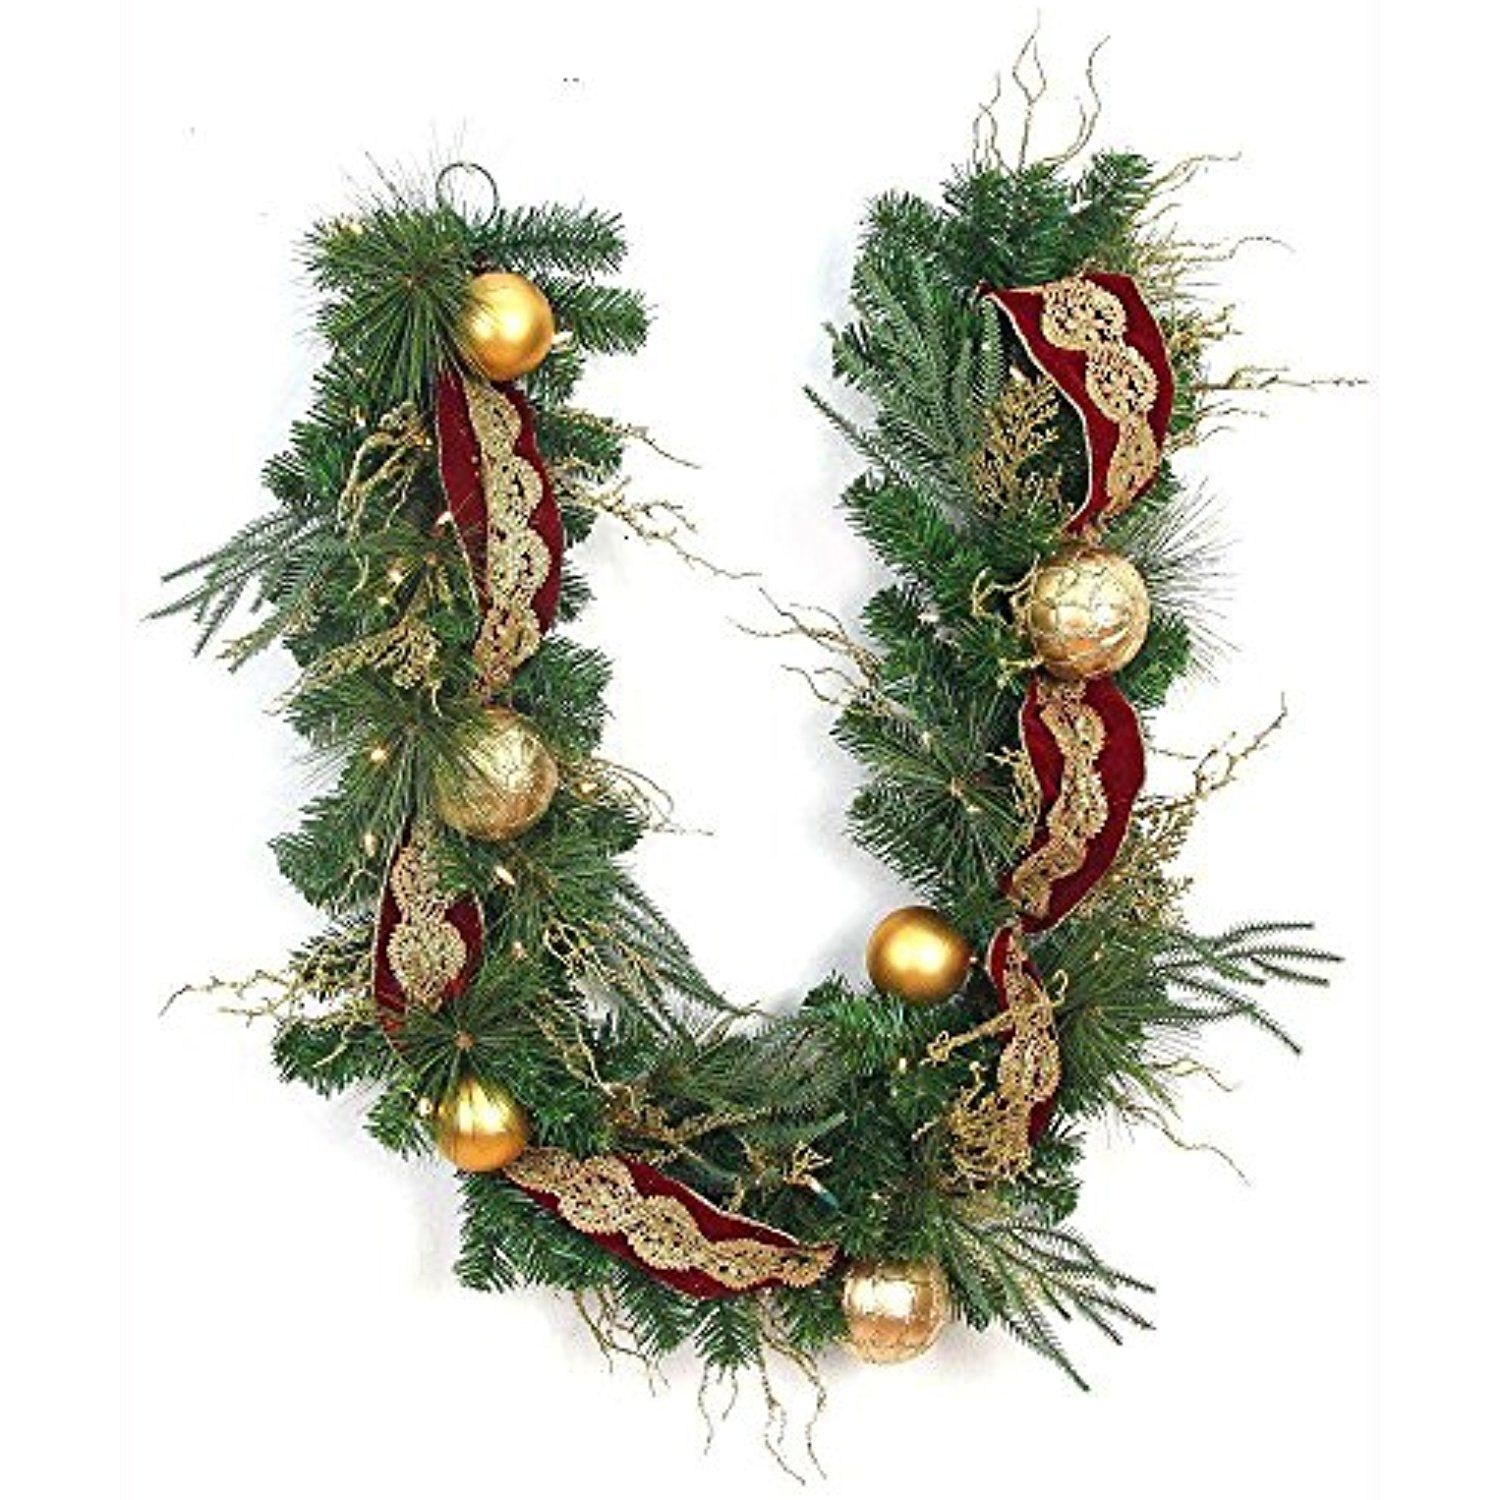 6 Ft Easy To Shape Pre Lit Valenzia Artificial Christmas Garland Decorated With Red Gold Ribb Artificial Garland White Led Lights Artificial Christmas Garland